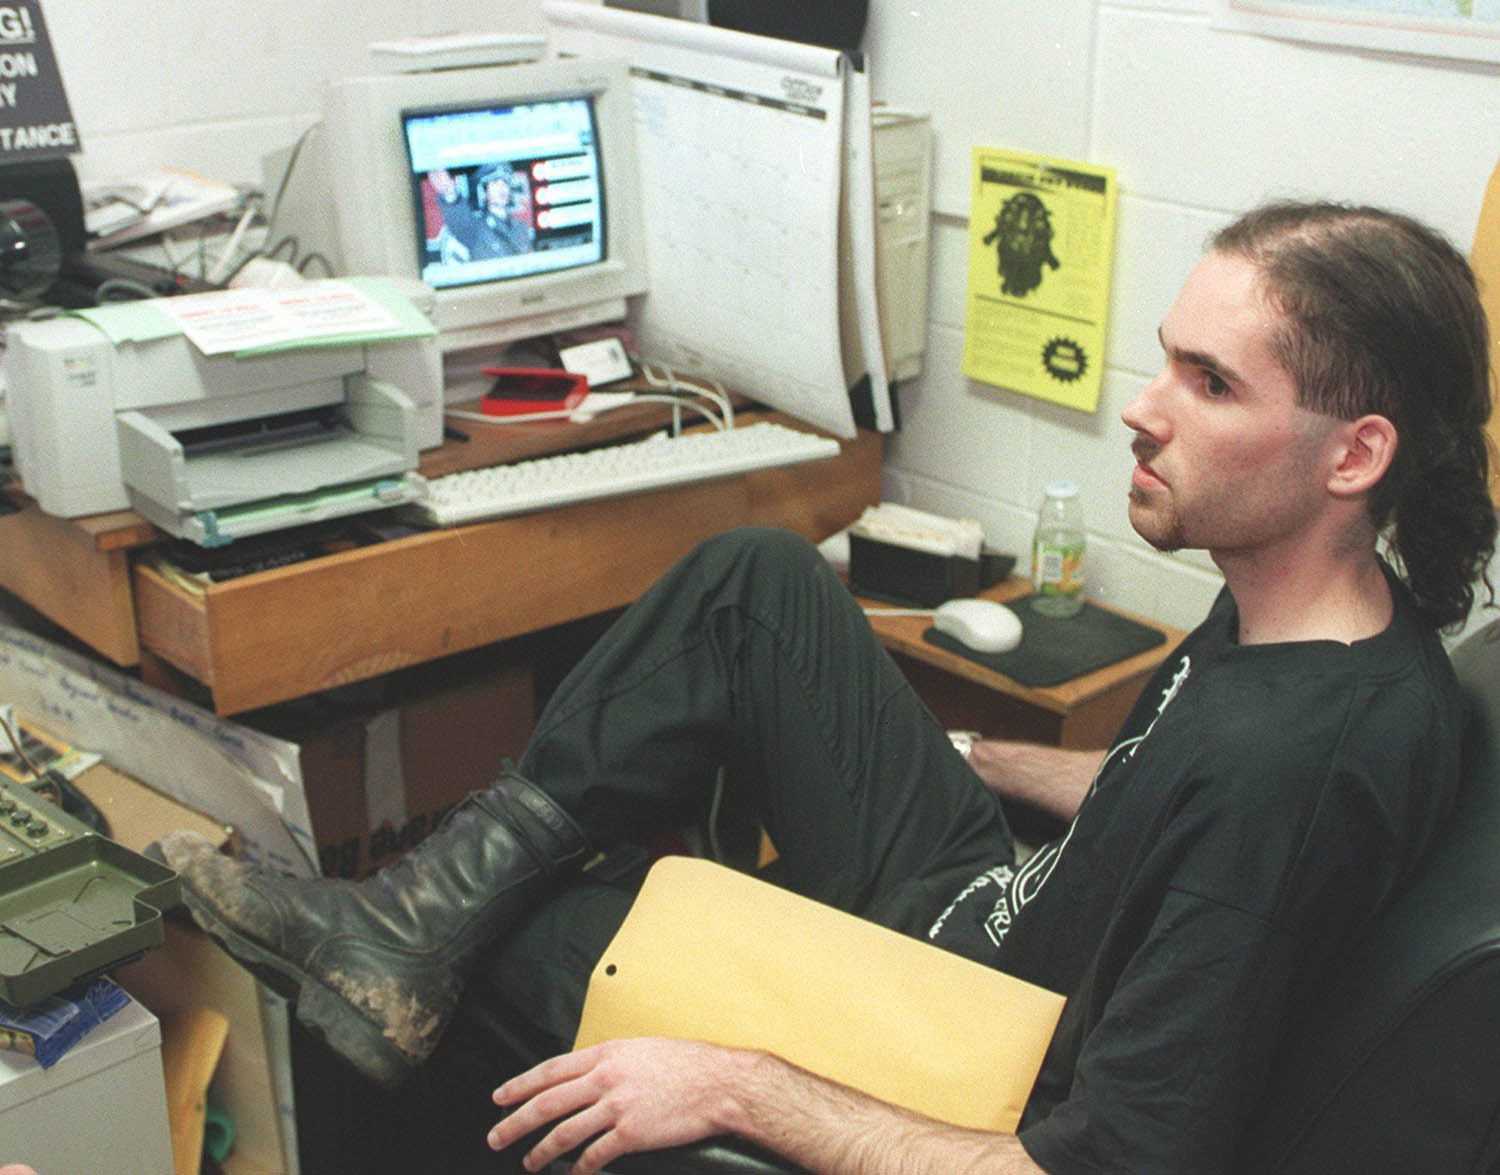 Davis Wolfgang Hawke sits in his dorm, in this undated photo, on the Wofford campus in Spartanburg, S.C. AOL is preparing to dig for buried gold and platinum on property in Massachusetts owned by the parents of Hawke, a man it sued for sending millions of unwanted spam e-mails to its customers. AOL won a $12.8 million judgment last year in U.S. District Court in Virginia against Hawke but has been unable to contact Hawke to collect any of the money he was ordered to pay. (AP Photo/Spartanburg Herald-Journal, Gerry Pate)